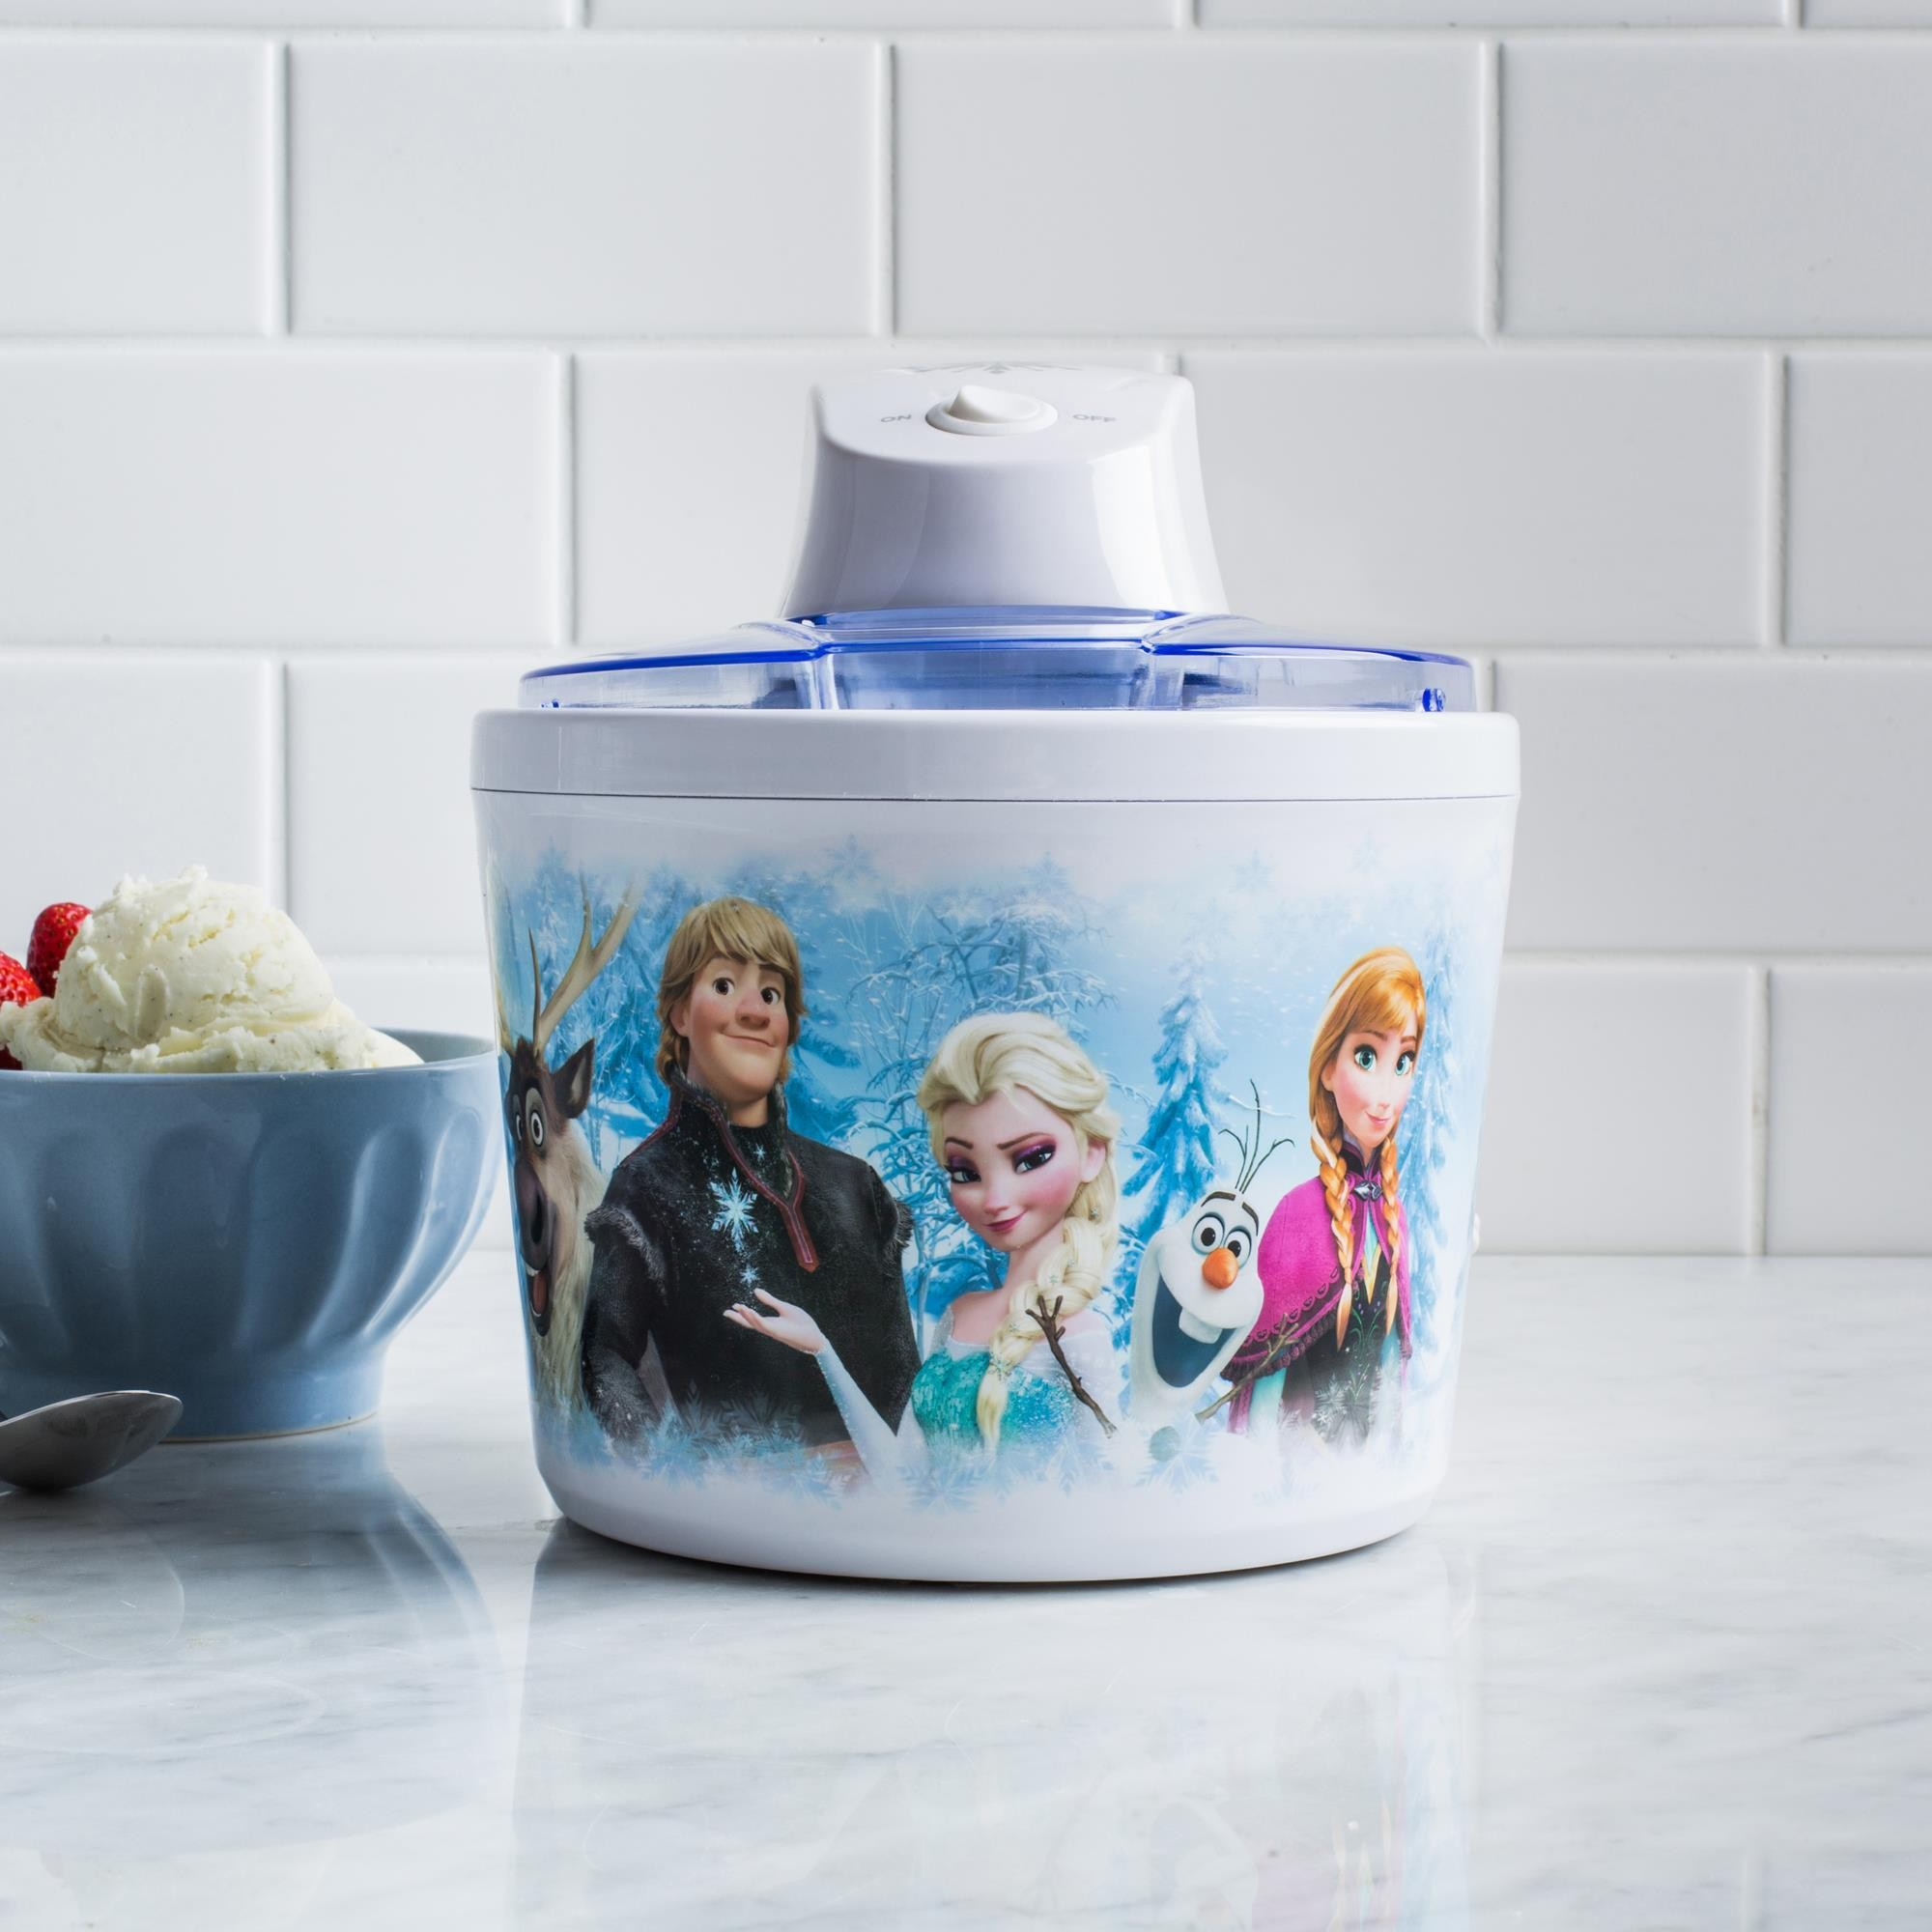 Frozen ice cream maker